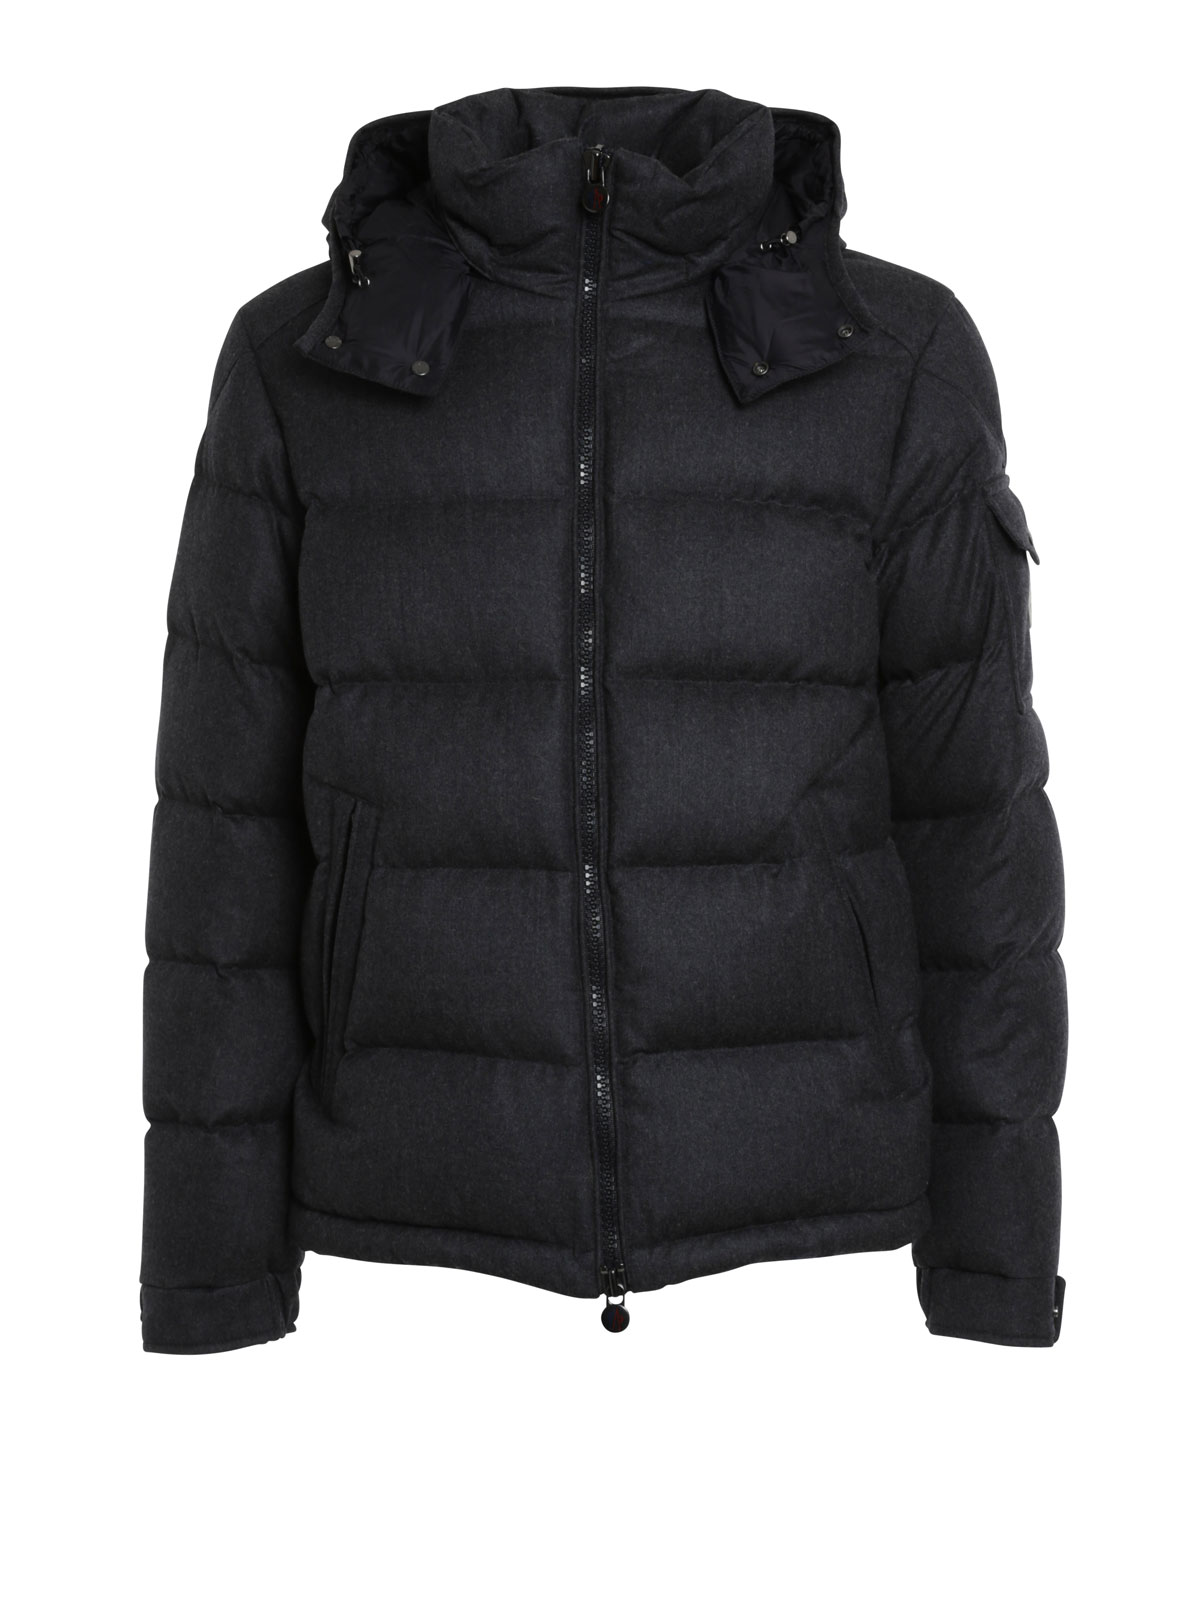 cdb0be7b3576 Moncler - Montgenevre down jacket - padded jackets - A2 091 4033805 ...